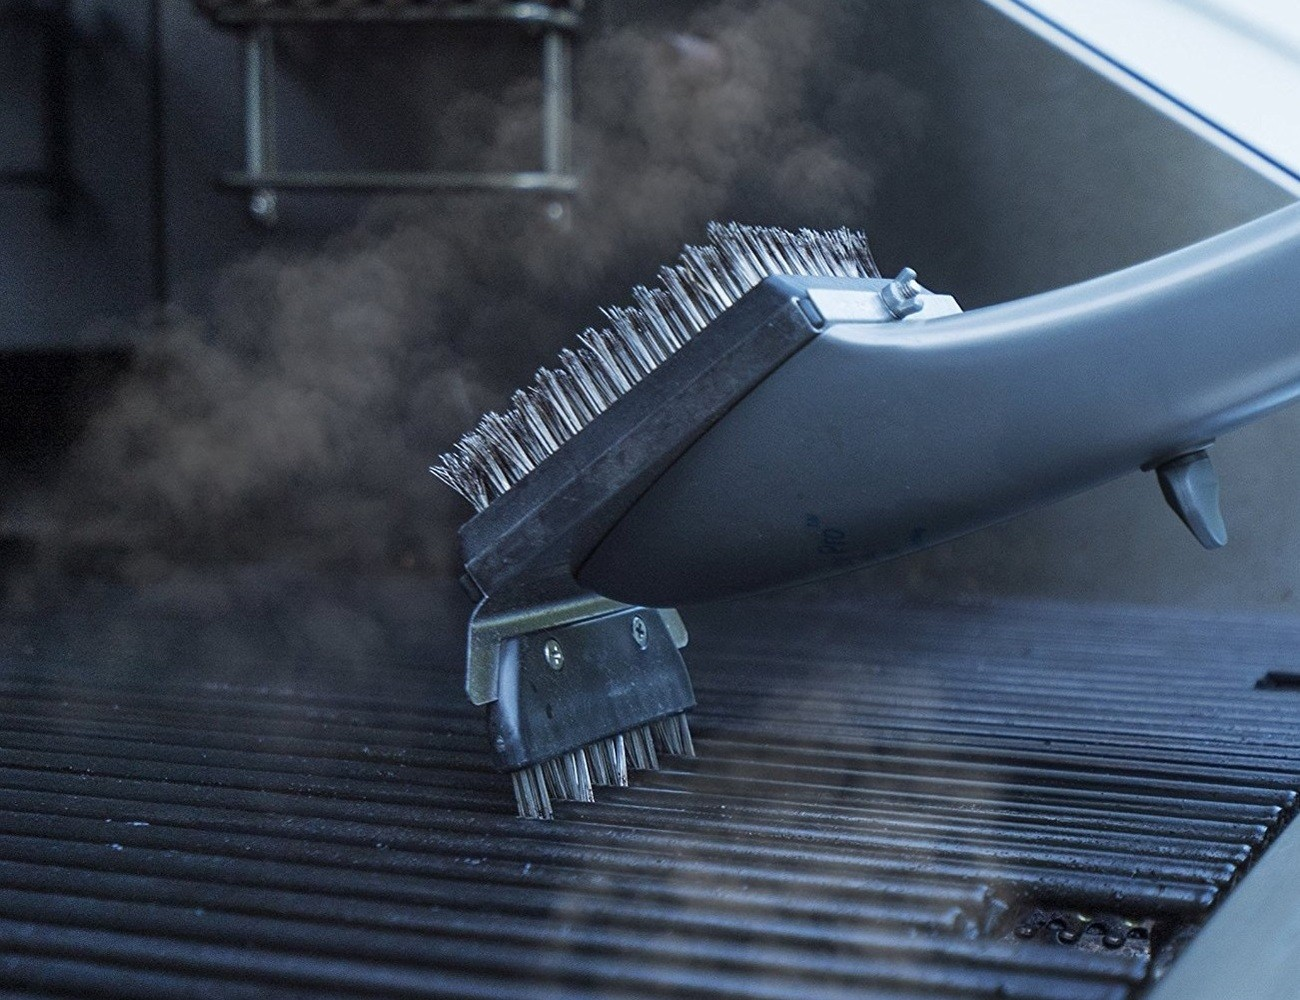 Steam+Cleaning+Grill+Brush